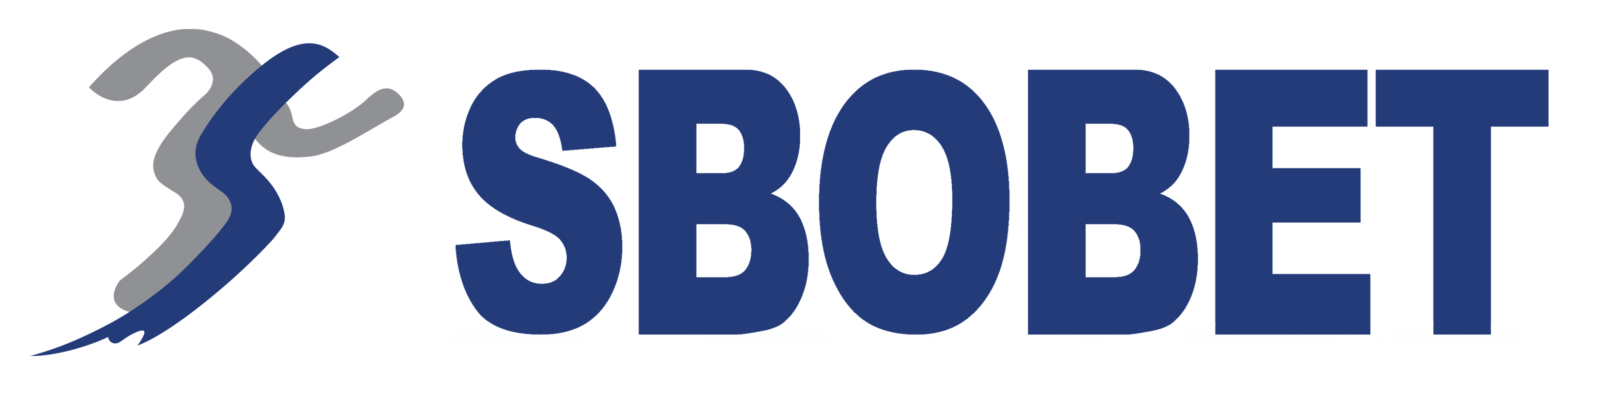 cropped-Sbobet-logo-new.png